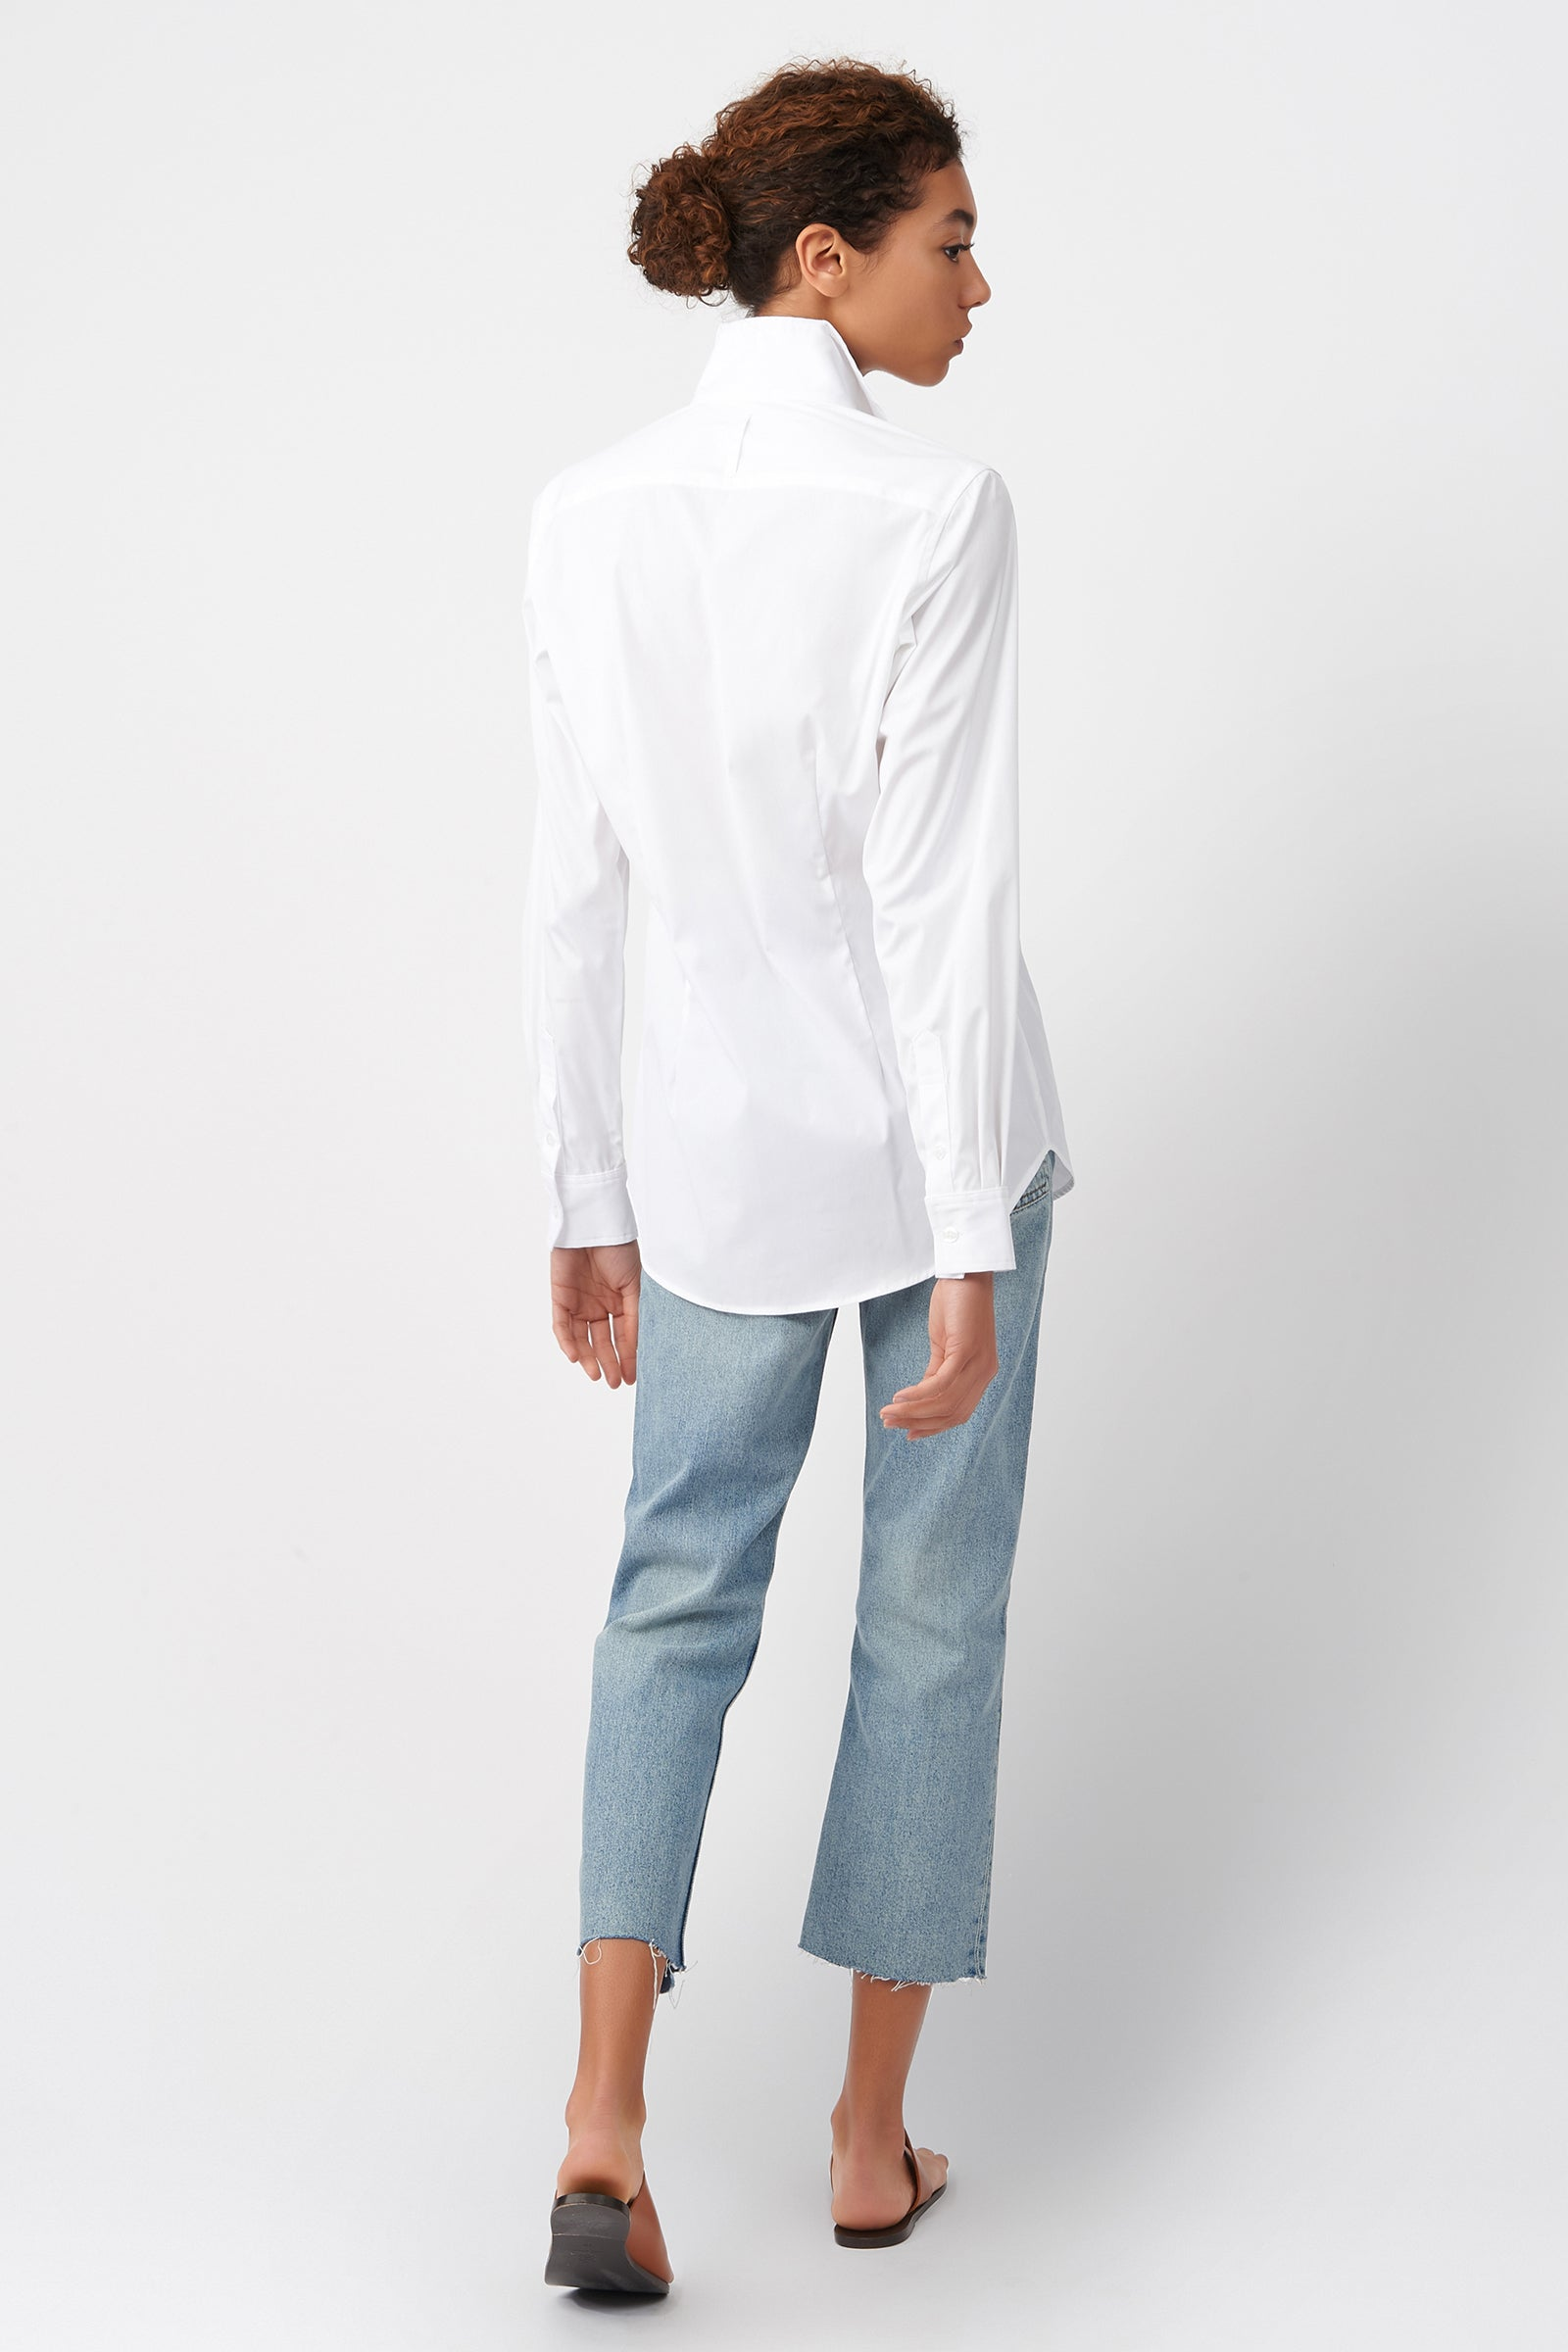 Kal Rieman Double Collar Shirt in White Cotton on Model Back View